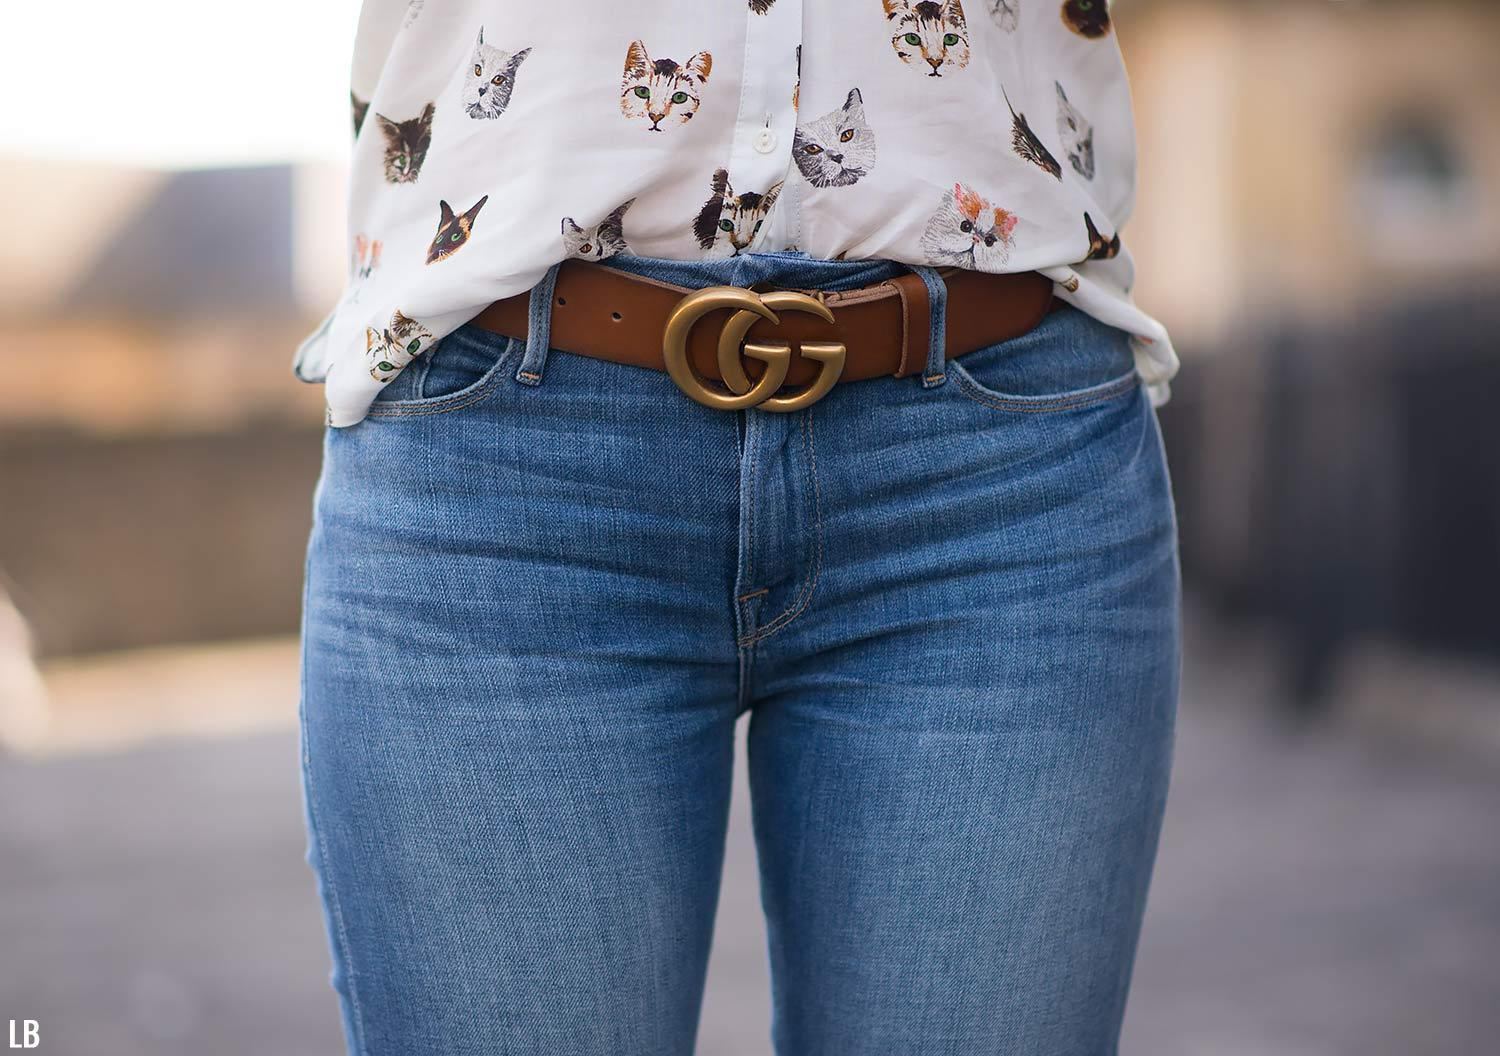 629cfe20d0d Overall Opinion – I literally have nothing bad at all to say about this belt.  I am completely in love with the design of it